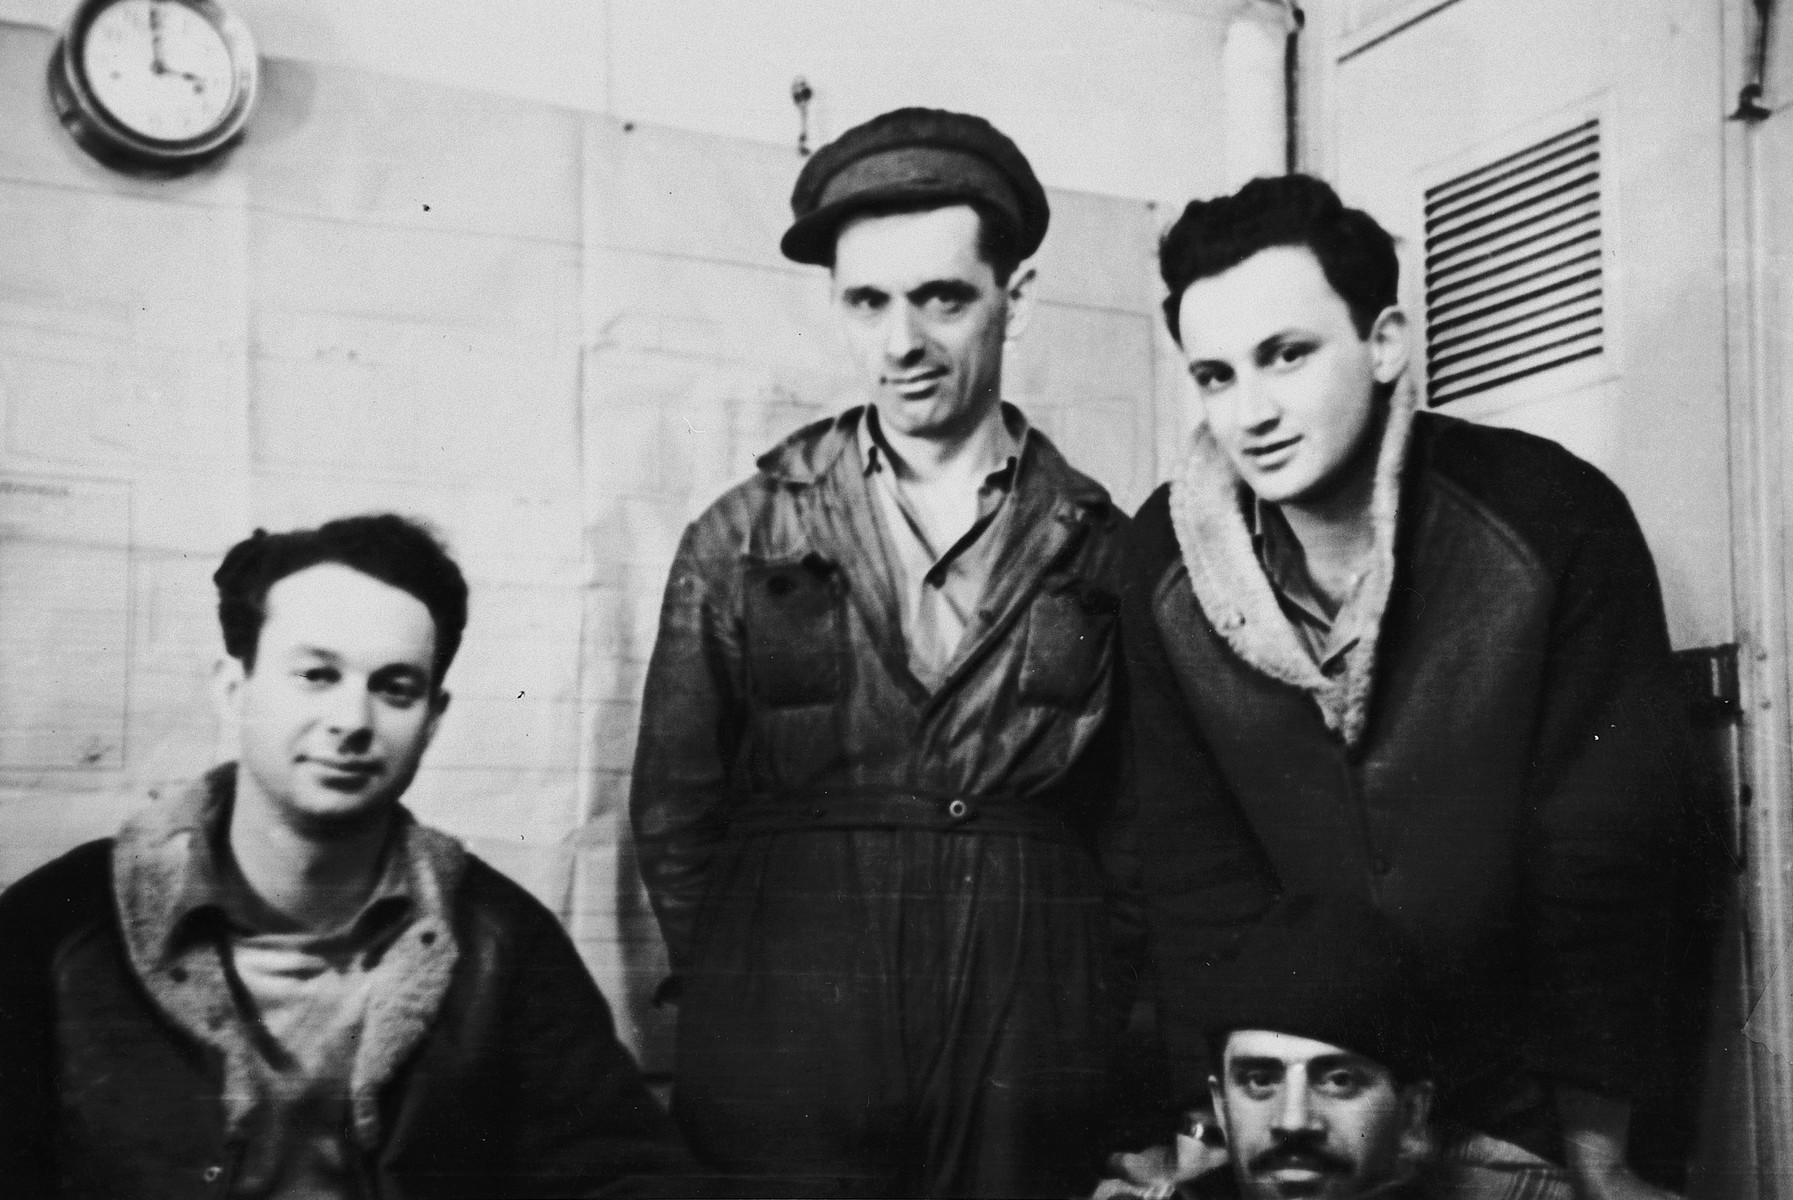 Four crew members of the Pan Cresent (Atzmaut) pose in a room below deck.  Pictured from left to right are Chaim Goldis, a Romanian engineer Katz and Gad Lifshitz.  Pictured in front is Berchik Lifshitz (Dov Magan).  Goldis and Gad Lifshitz were radio operators and Dov Magan was the ship's commander.  They also belonged to the Palyam, the naval branch of the Palmach.  Goldis was a platoon leader and killed near Hulda at the end of March, 1948.